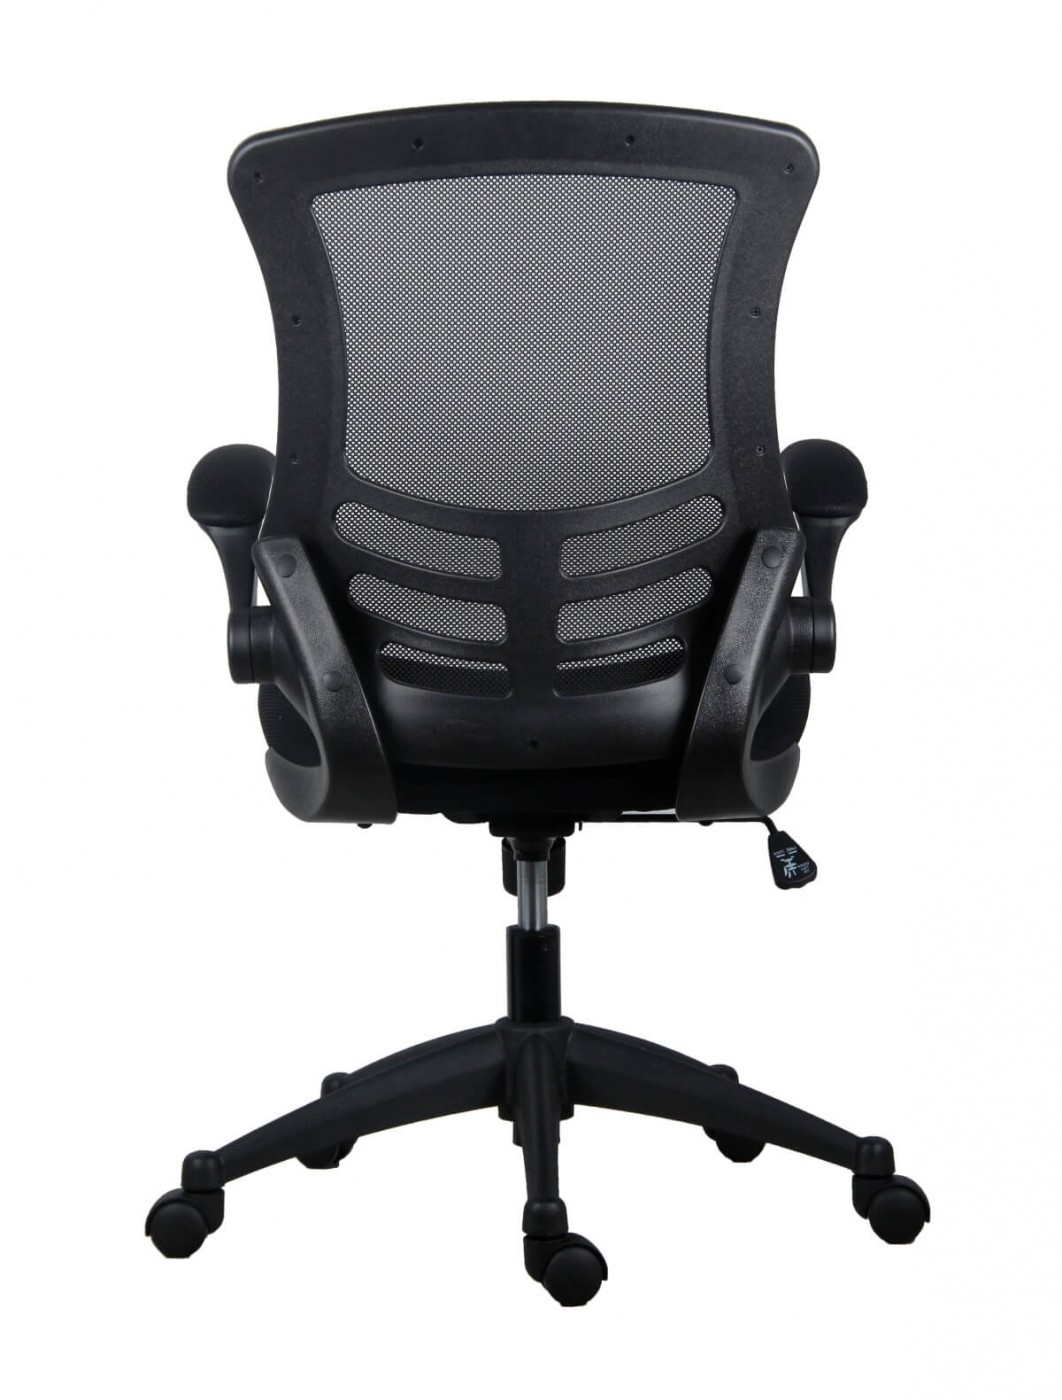 Office Chairs Marlos Mesh Office Chair In Black CH0790BK